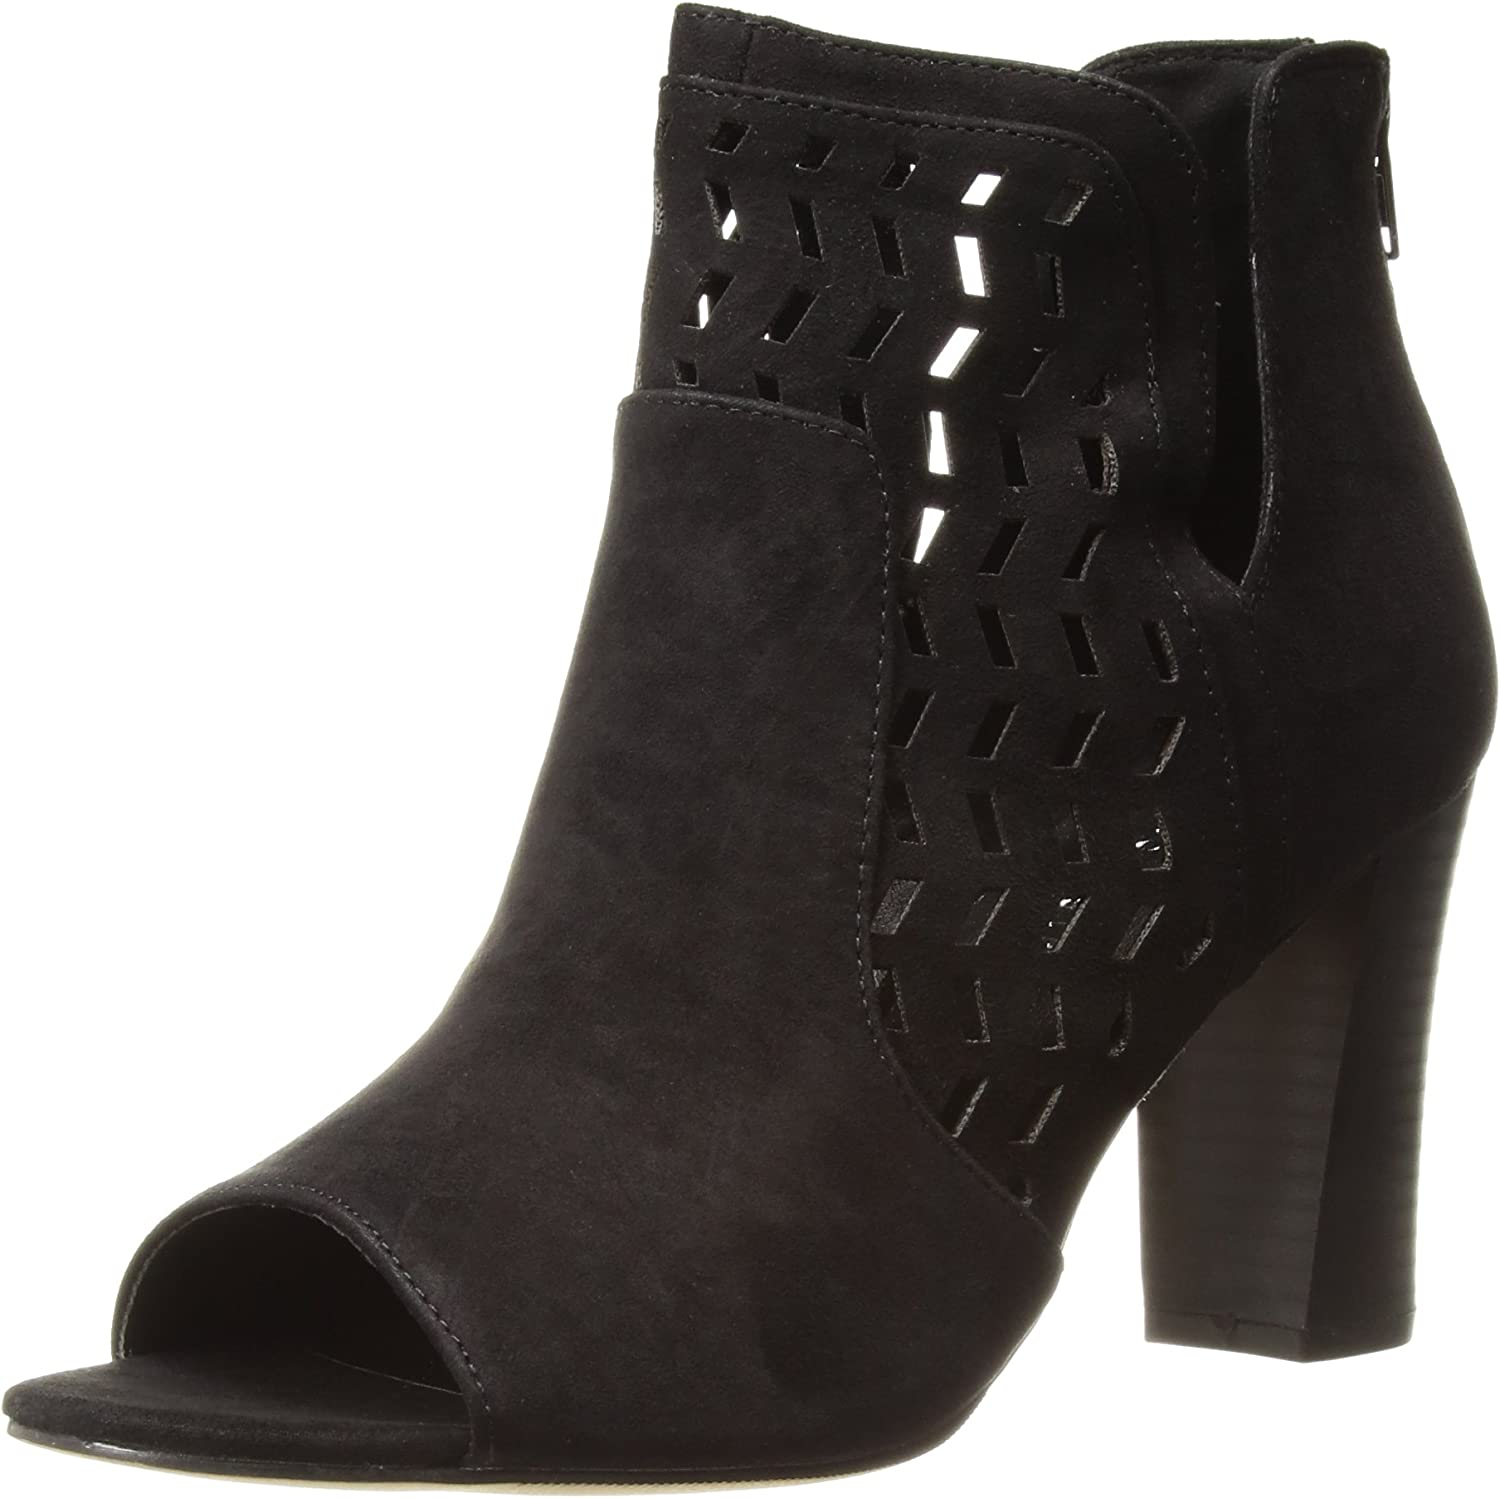 Madden girl Womens Bright Ankle Boot